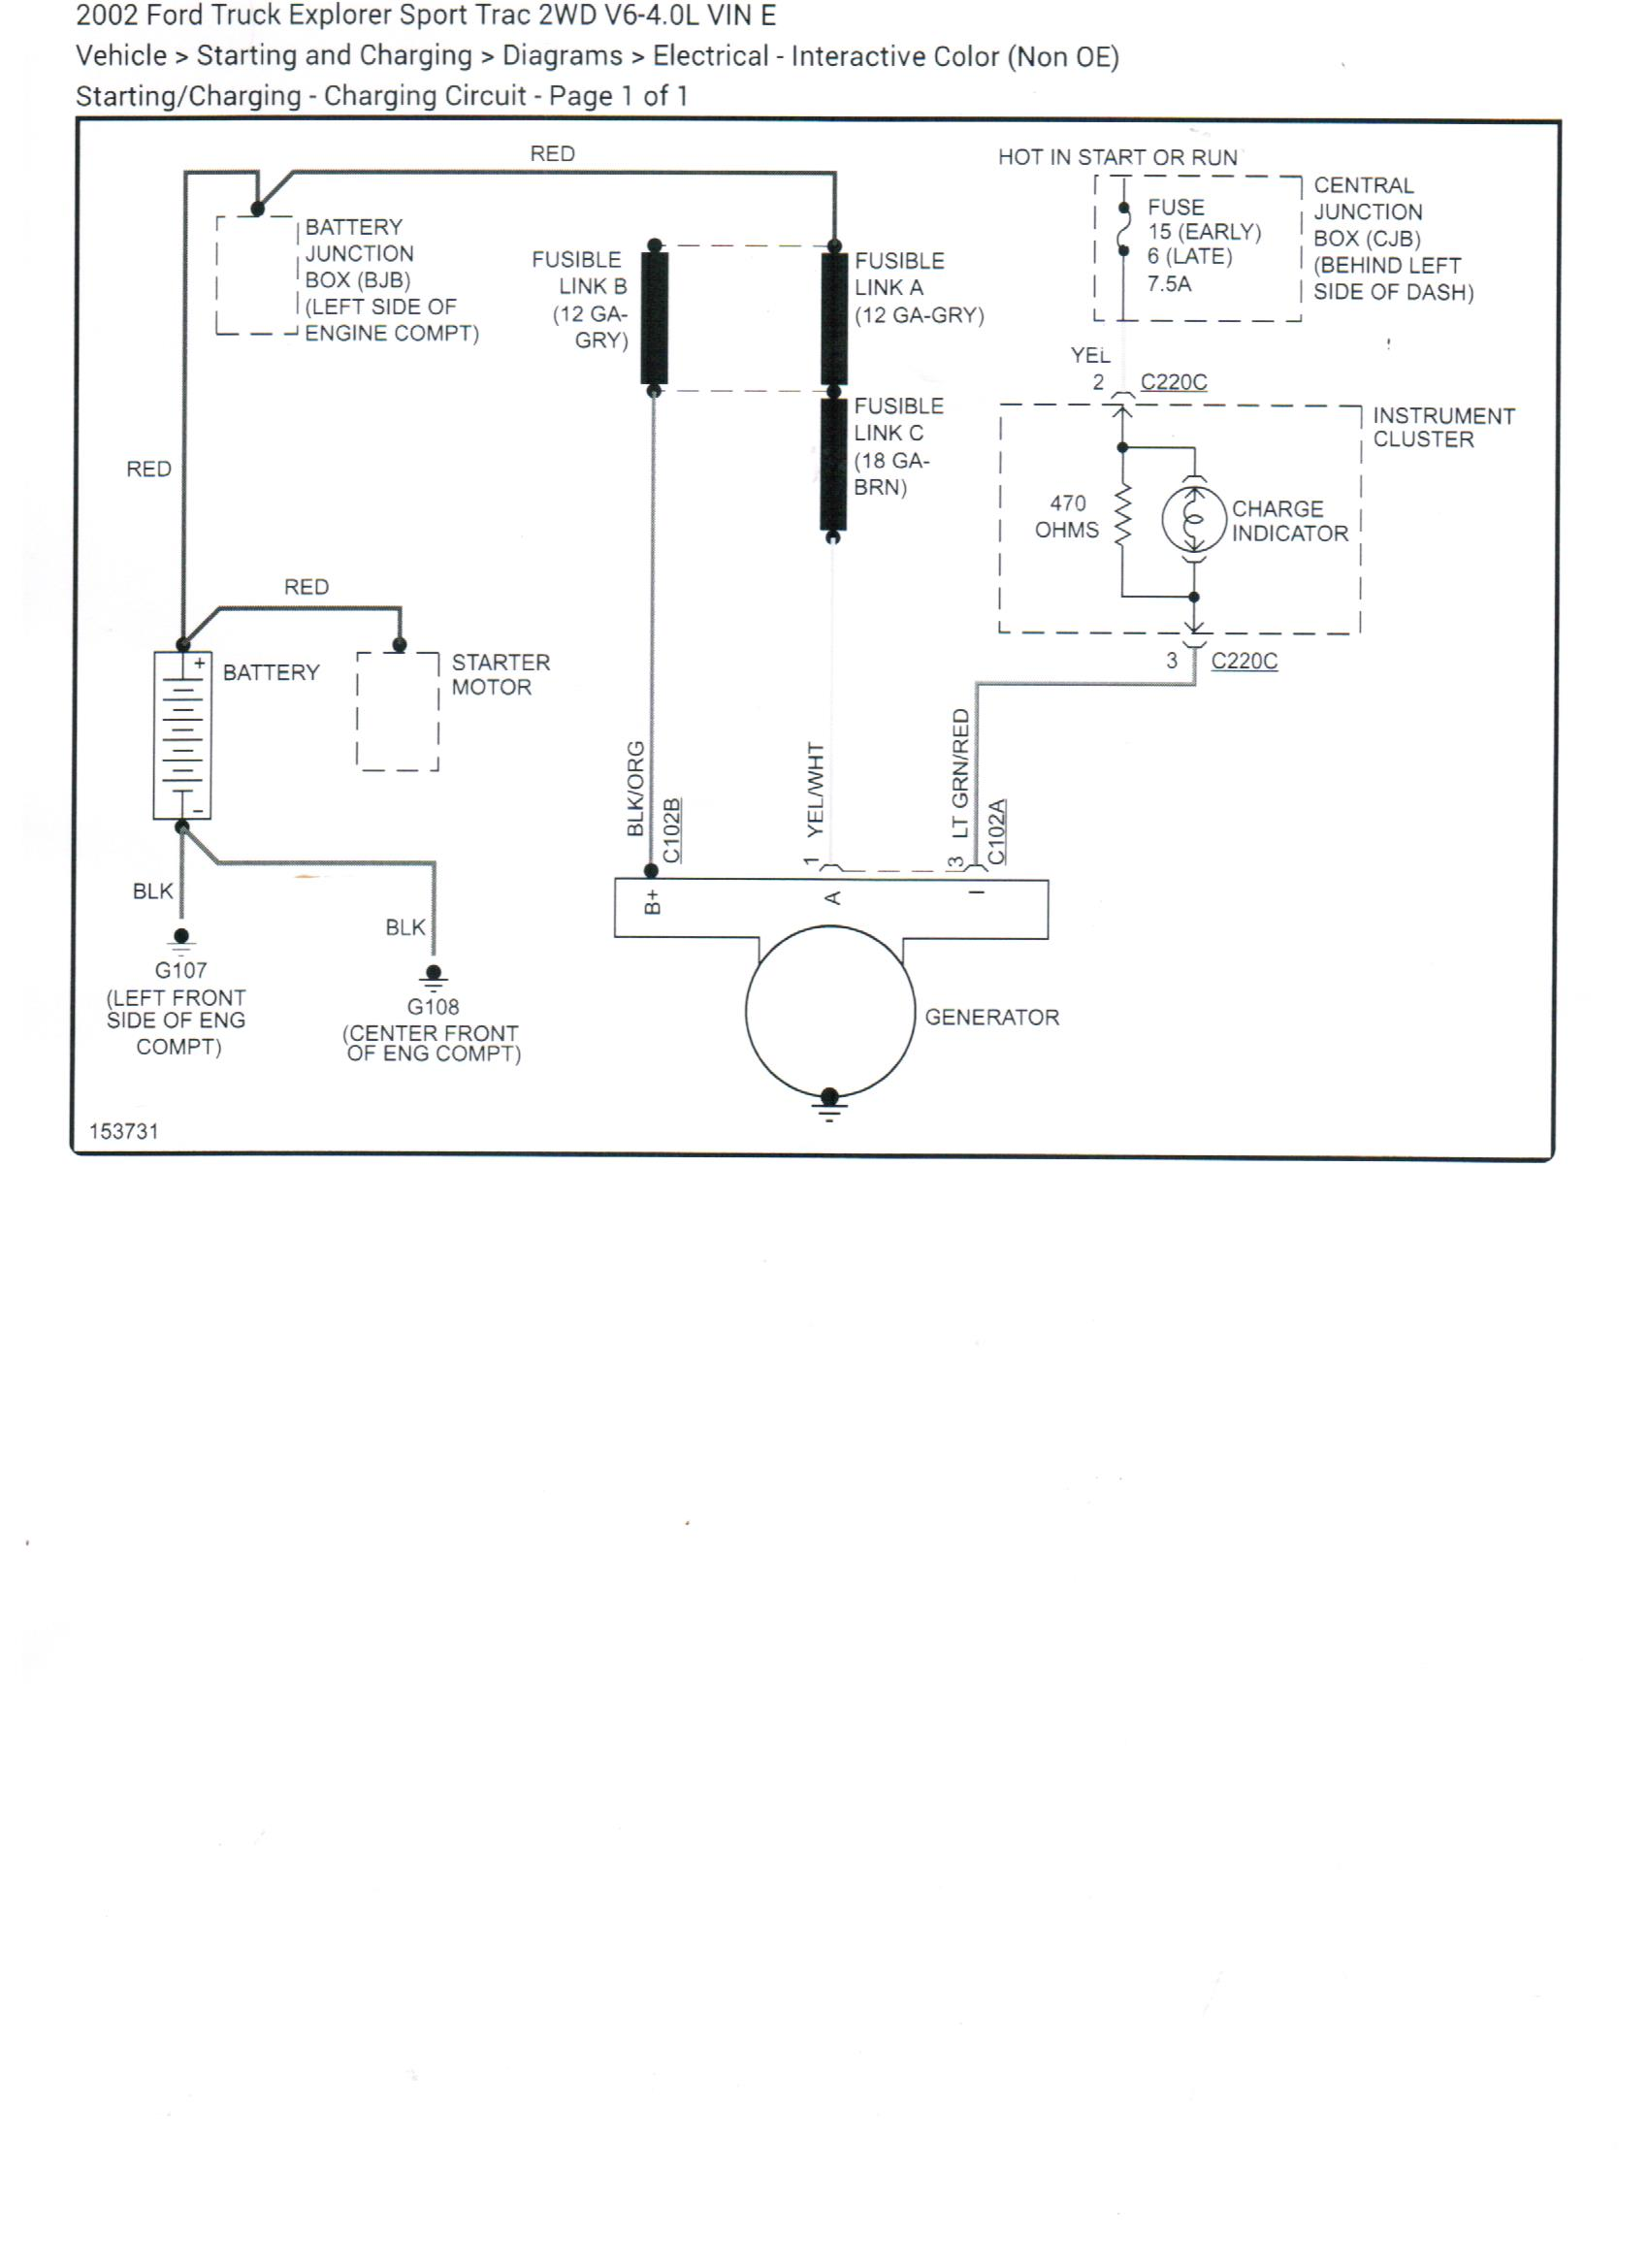 I Need A Wiring Diagram For Maf On Ford Explorer Trac Sport 2002 4 0l Engine 7f8c8c8b 8a4b 43ee Bf6f 8e3cef9e83f3 Ford1 001